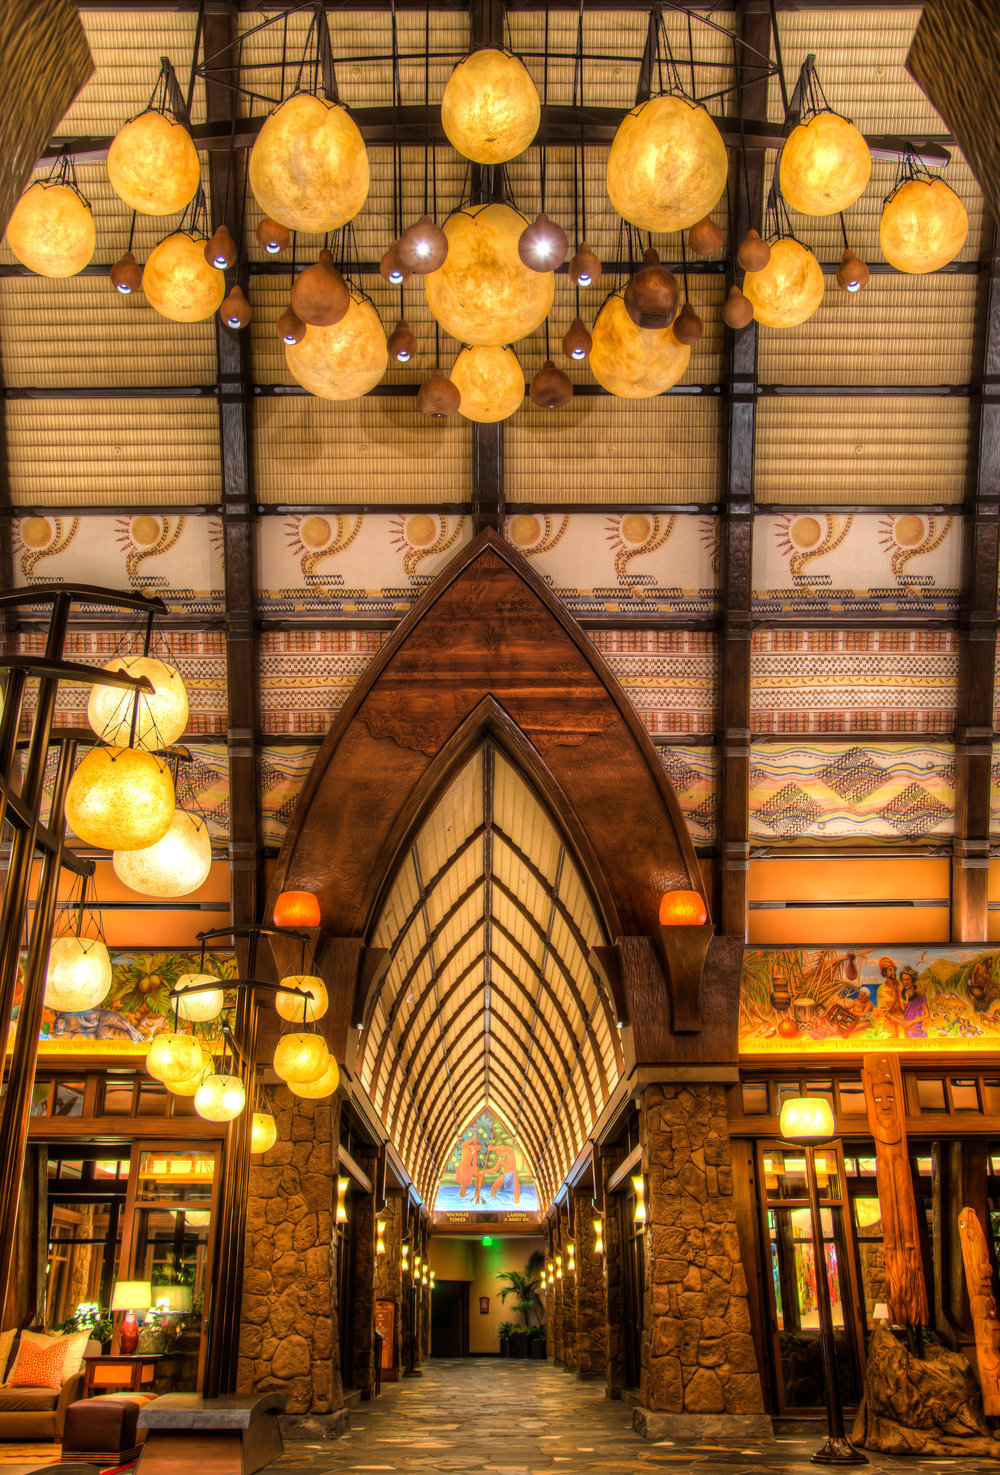 Disney's Aulani Resort in Hawaii